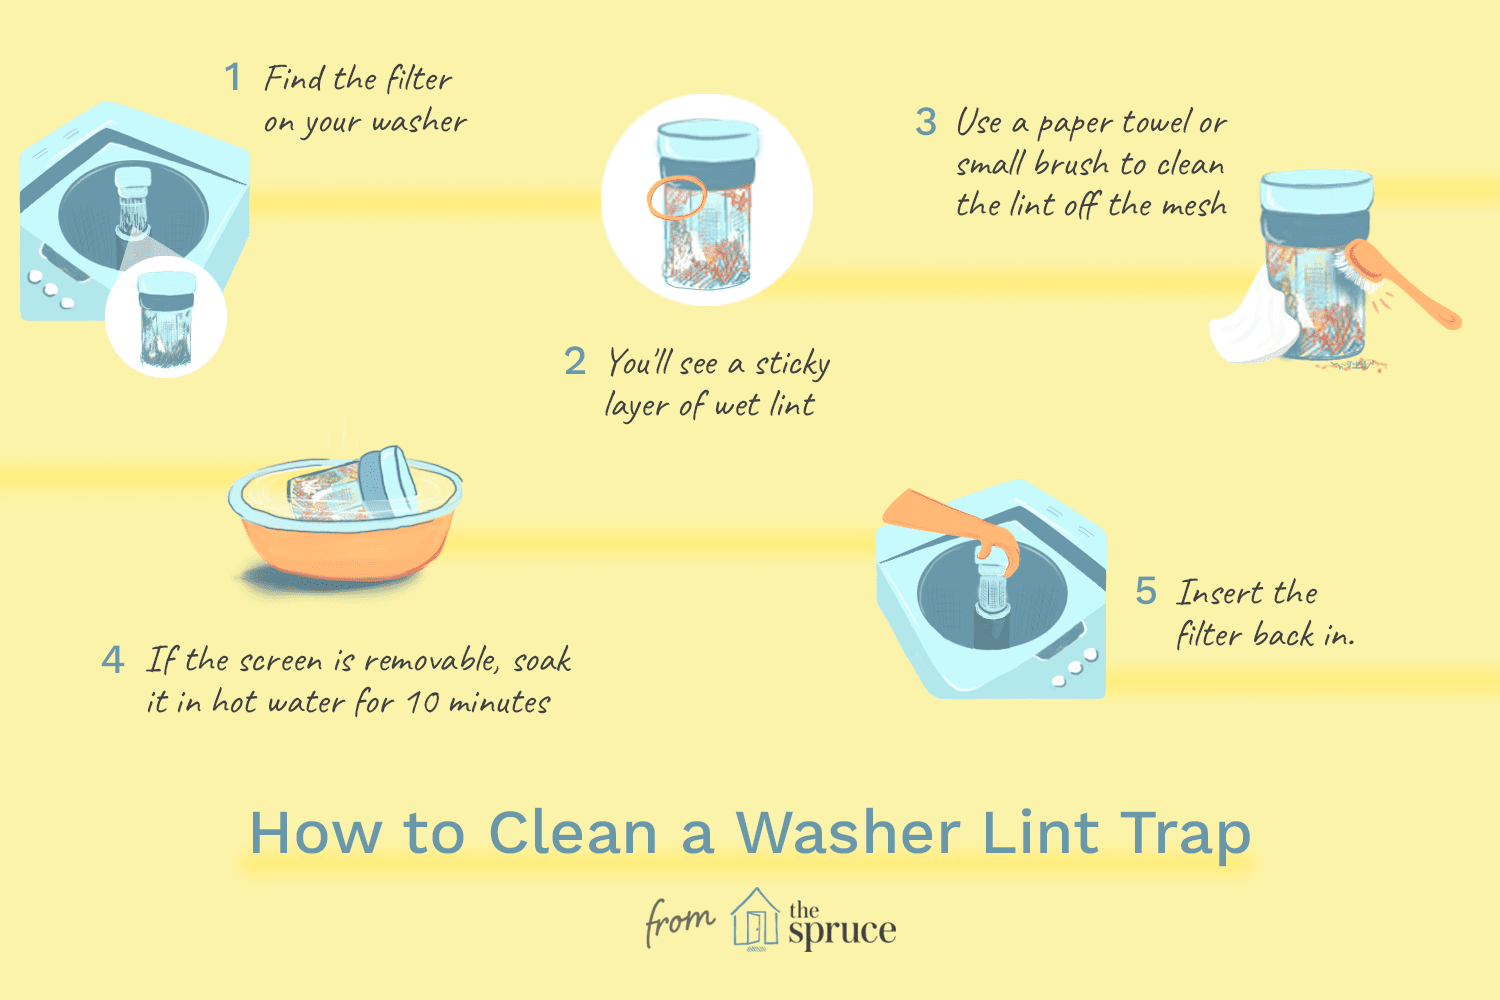 How To Clean A Washer Lint Trap